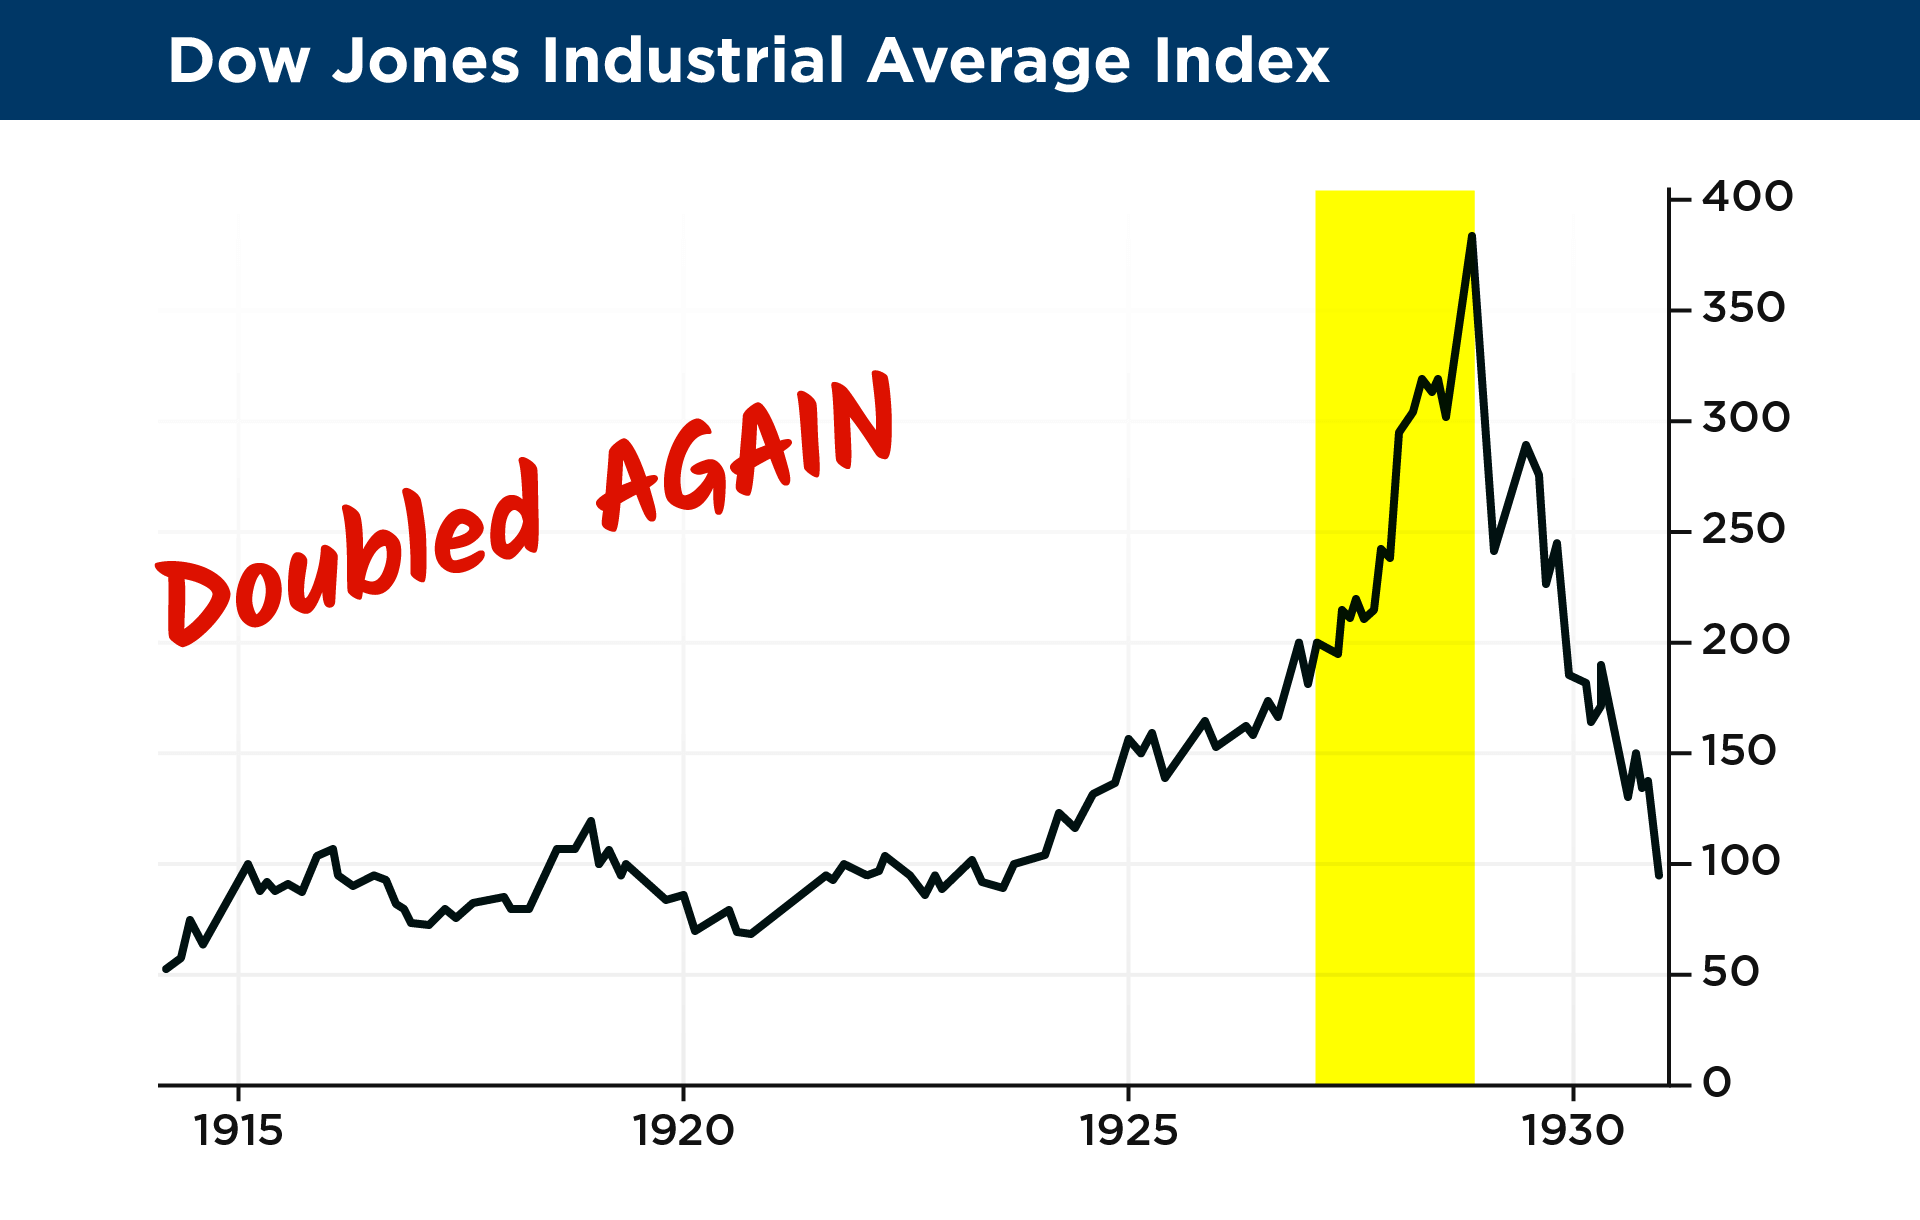 13a dow jones industrial average index 32xg it happened in 1980s japan biocorpaavc Images